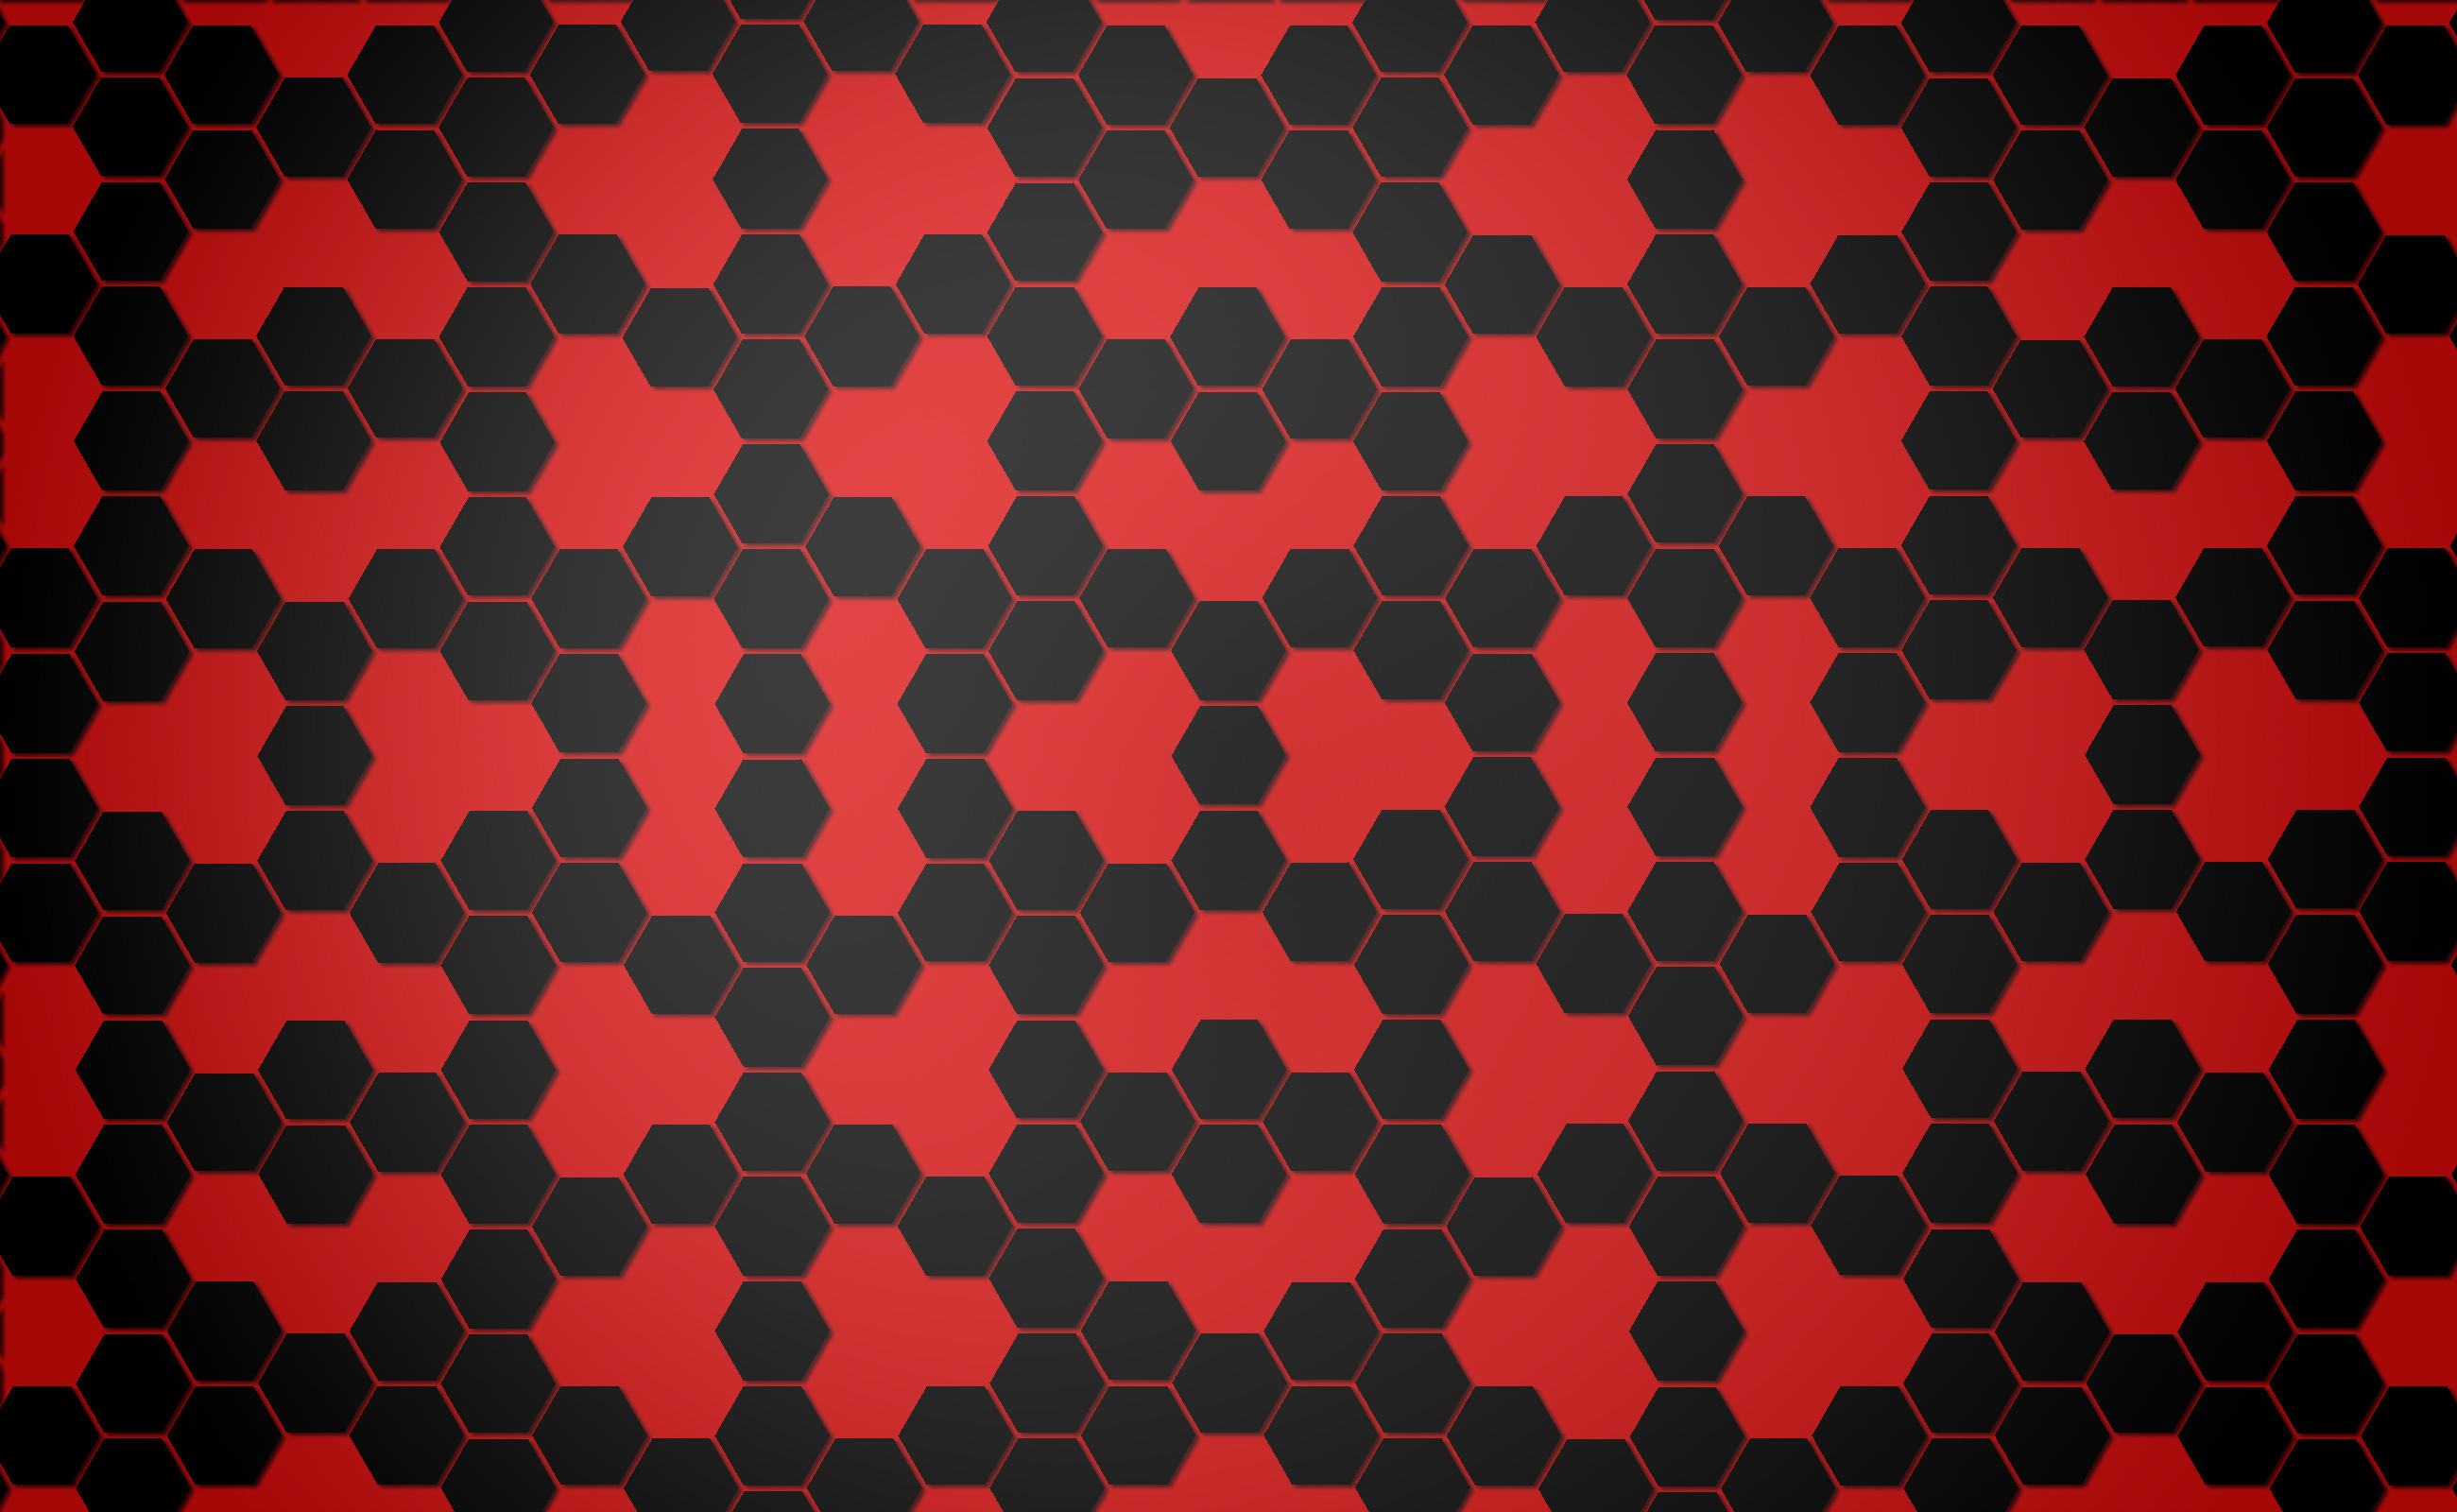 Abstract – Pattern Black Hexagon Red Abstract Wallpaper